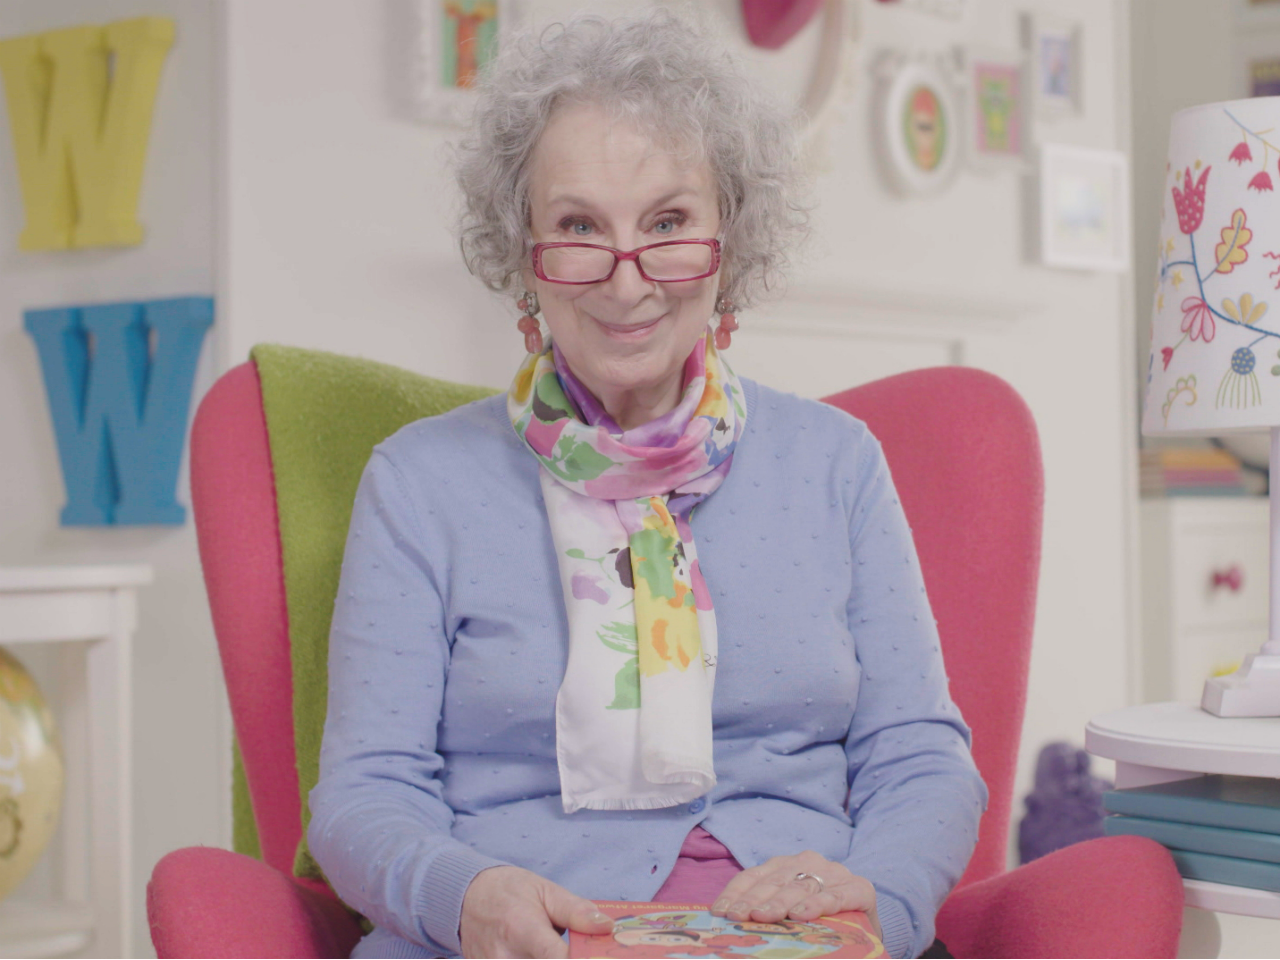 Photo of Margaret Atwood in the opening credits of the show